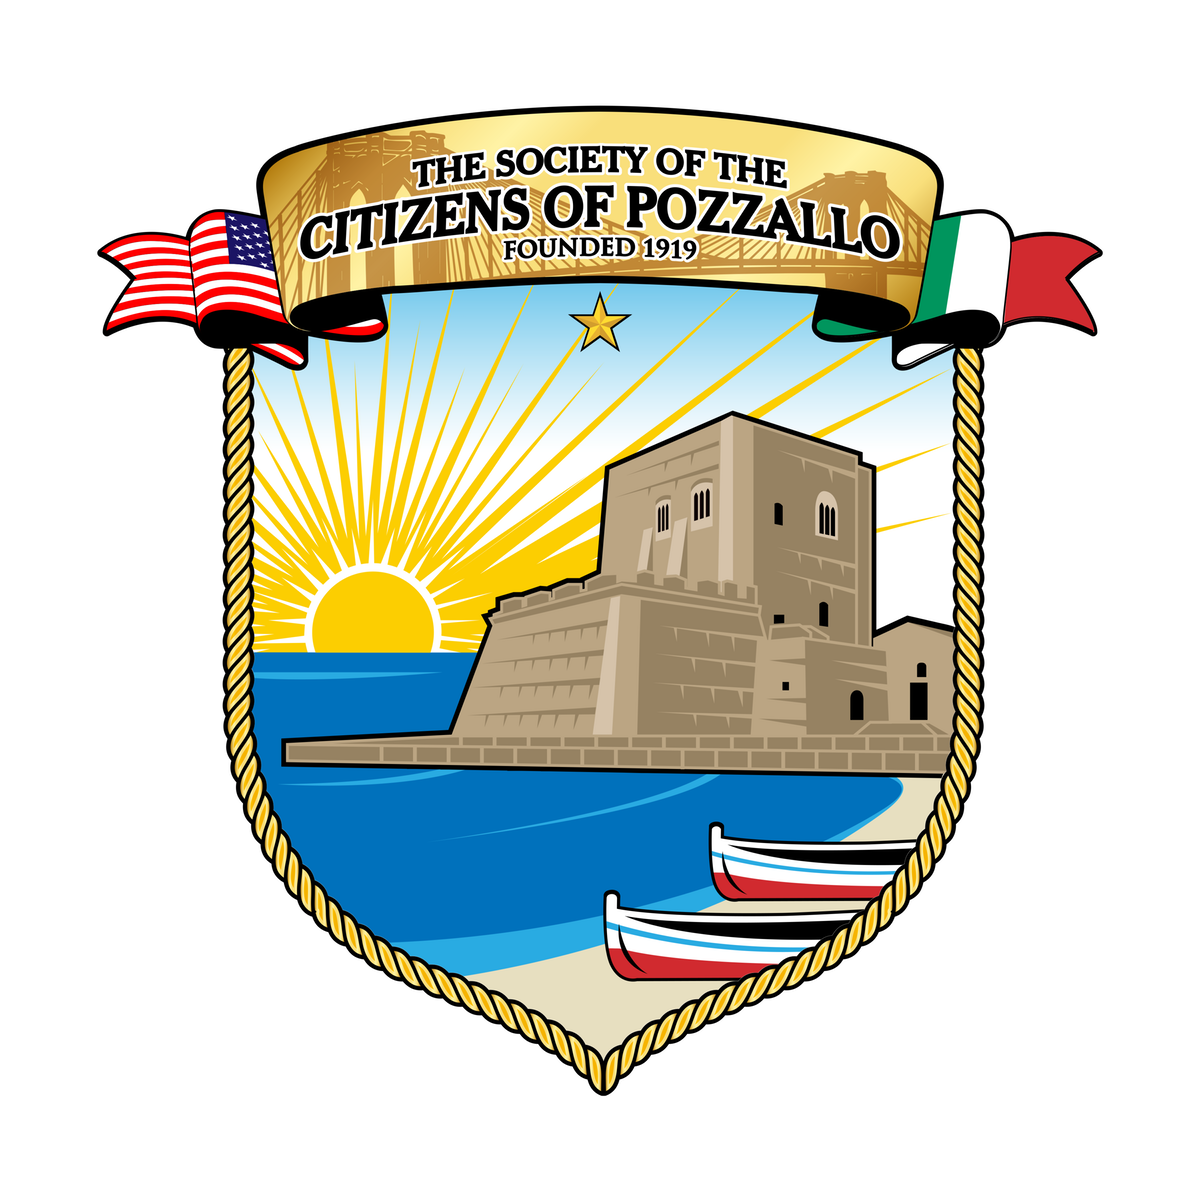 Final touches on - Re-Styling of The Society of the Citizens of Pozzallo logo